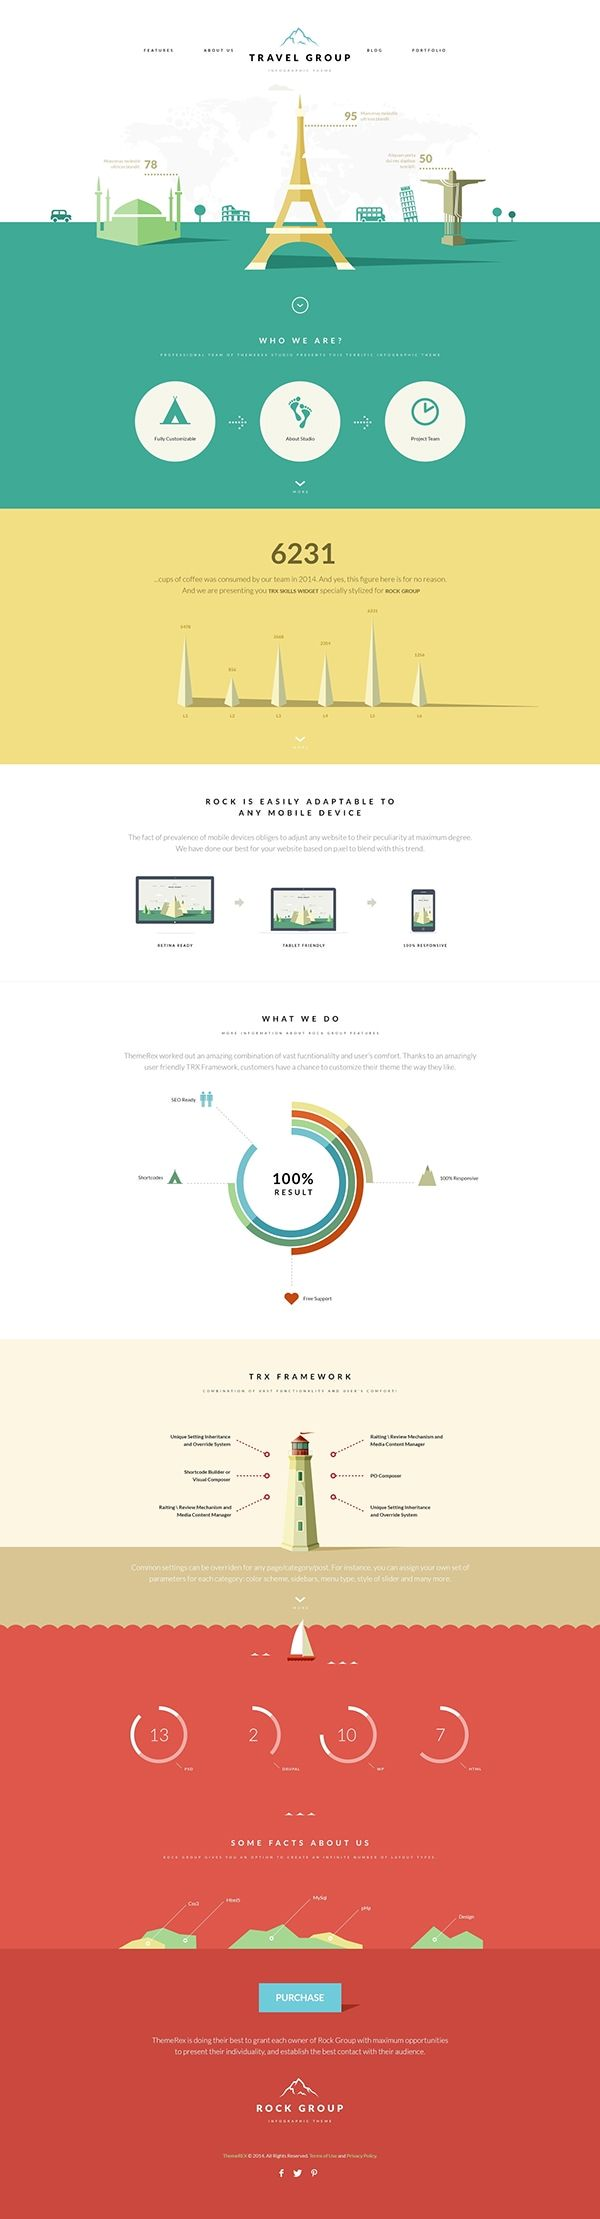 An interesting #infographic, simple and modern. Good Job! A project by https://www.behance.net/webcreateme